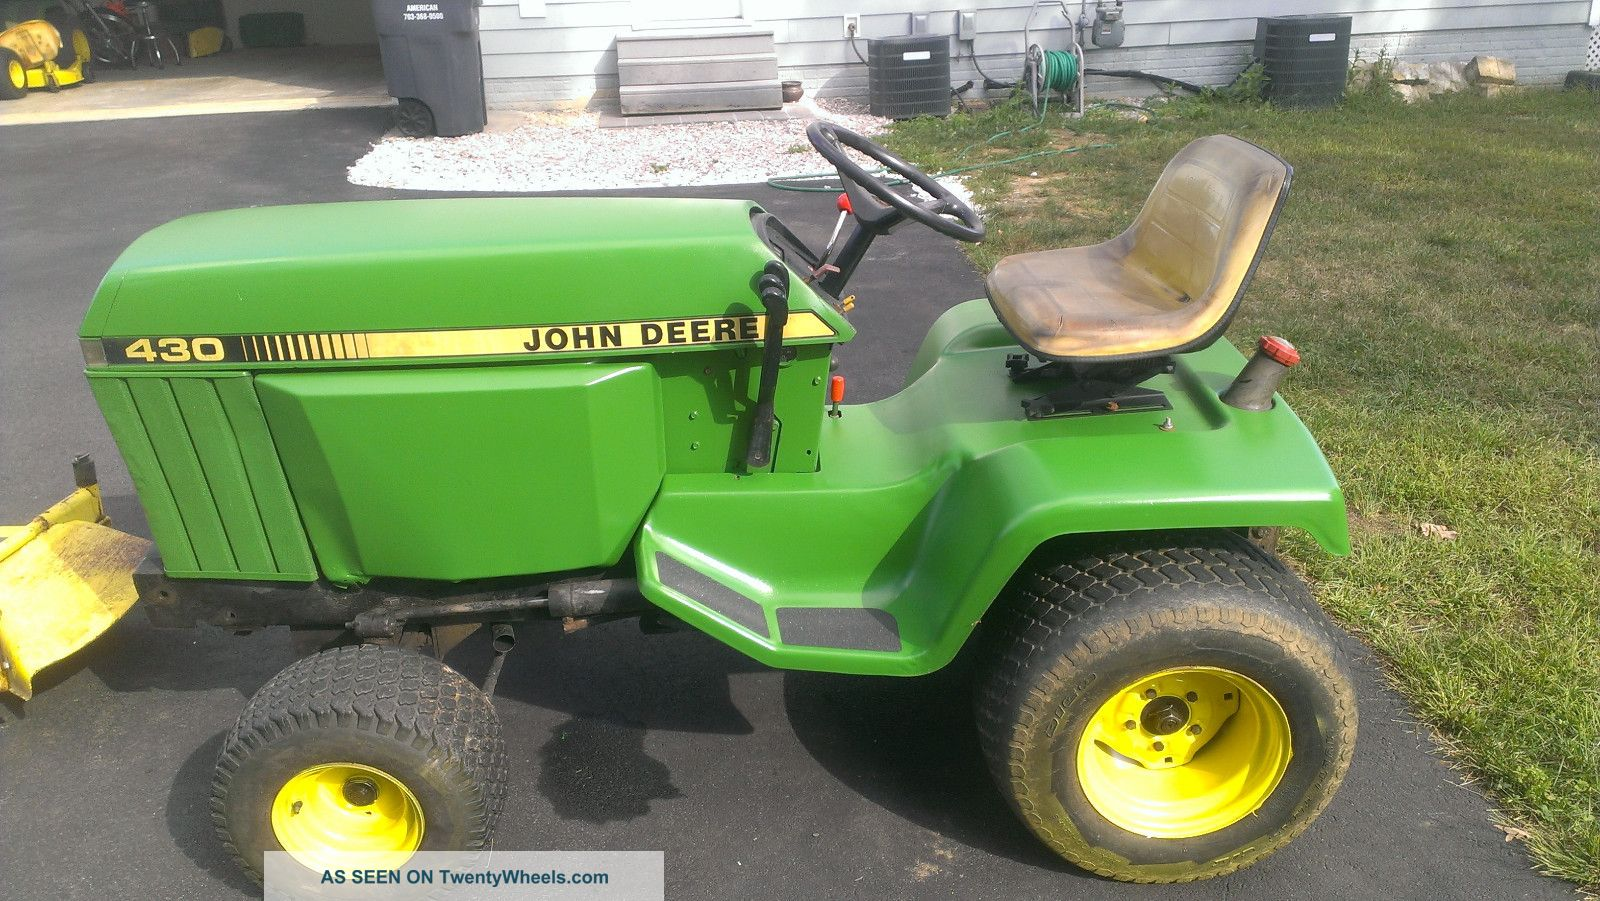 John Deere Garden Tractor W More Tractors Kohler K532 Wiring Diagram 425 47 Snowblower And 54